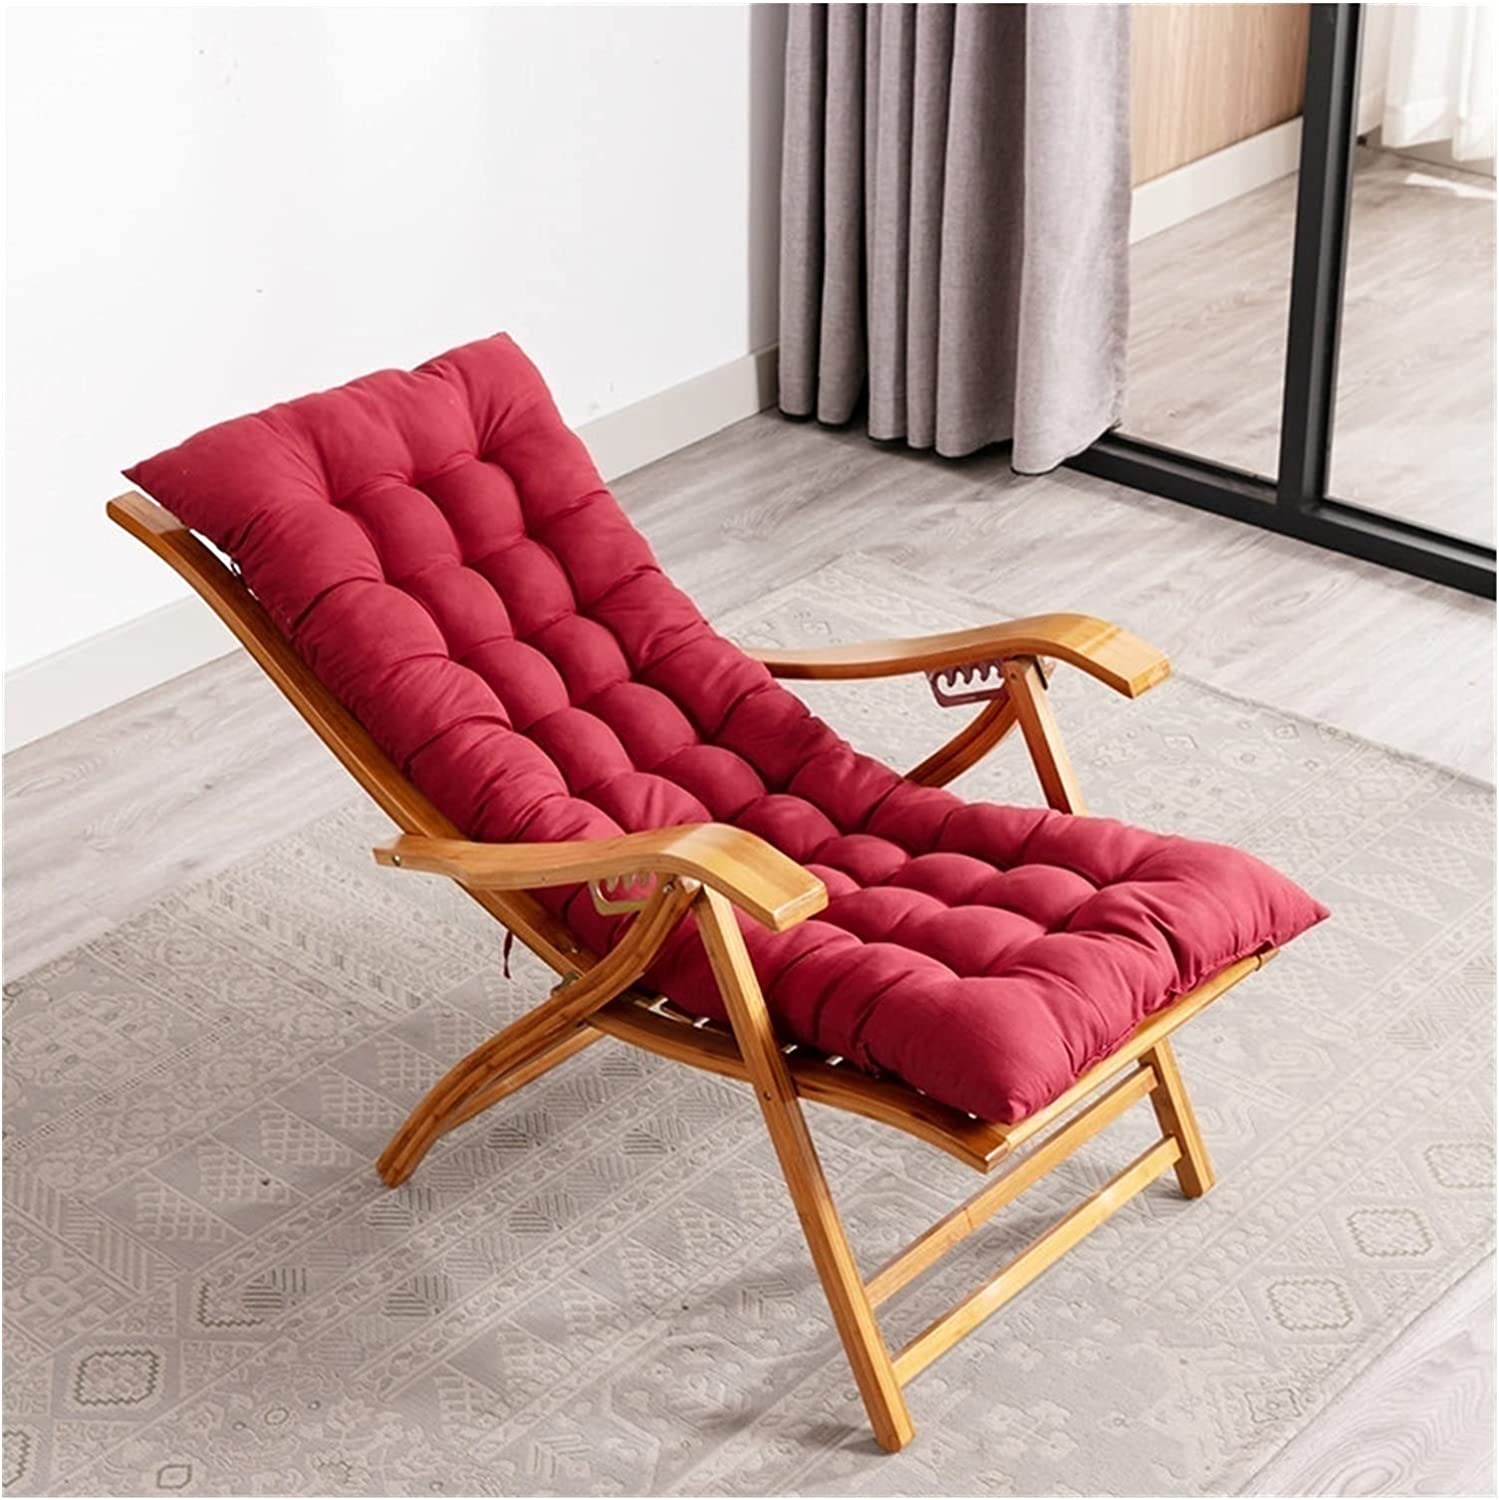 Comfortable Outdoor Courier shipping free shipping indoor Garden Reclining 2021new shipping free wooden Chair folding